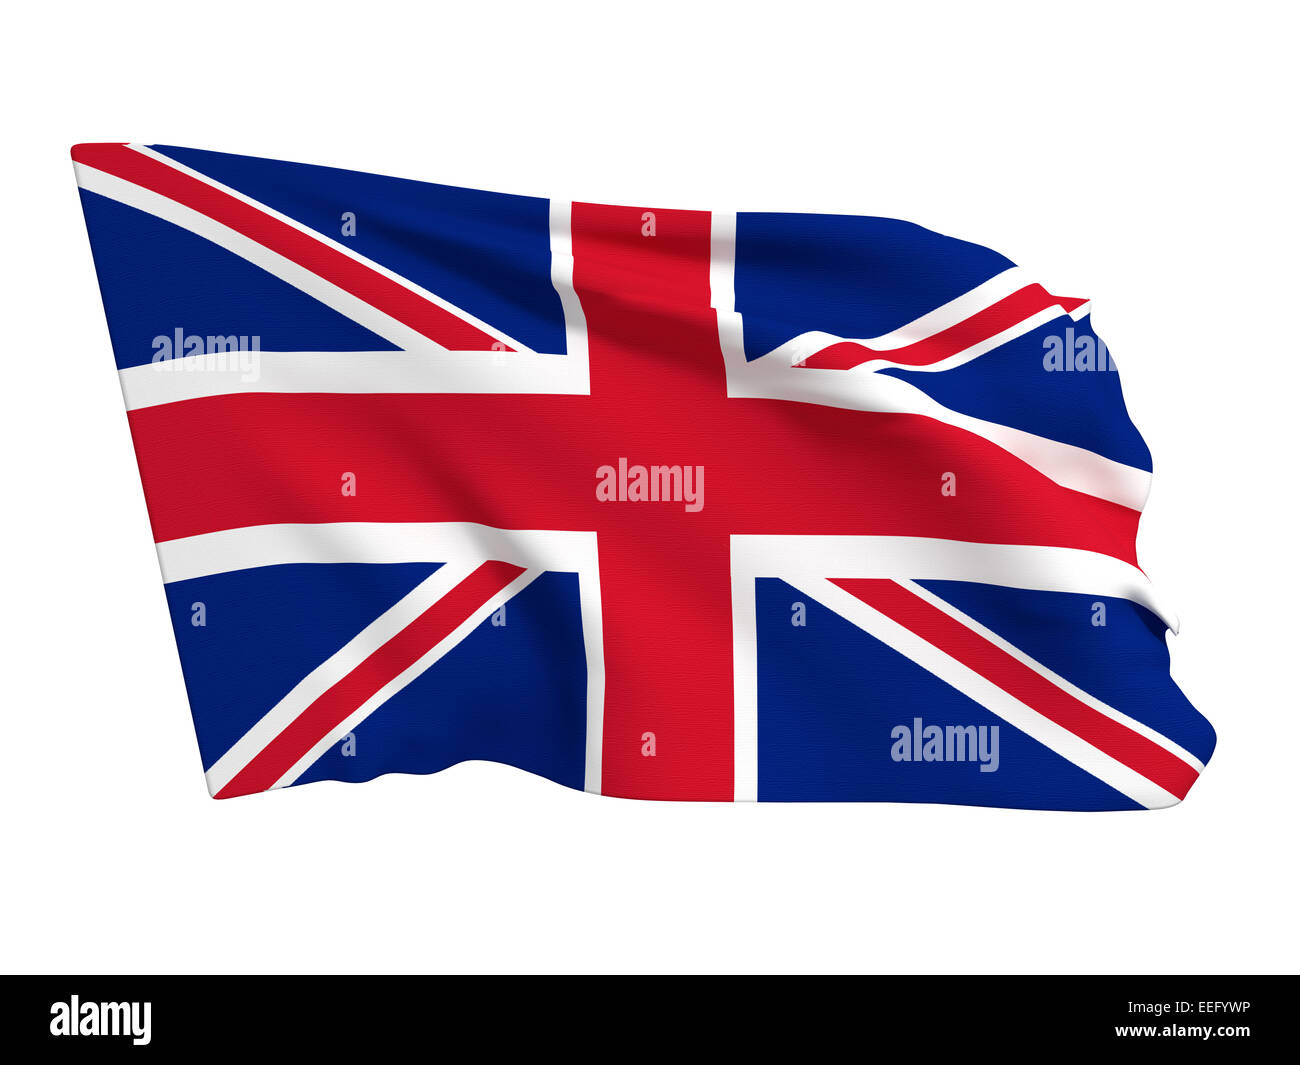 3d rendering of an united kingdom flag on a white background - Stock Image